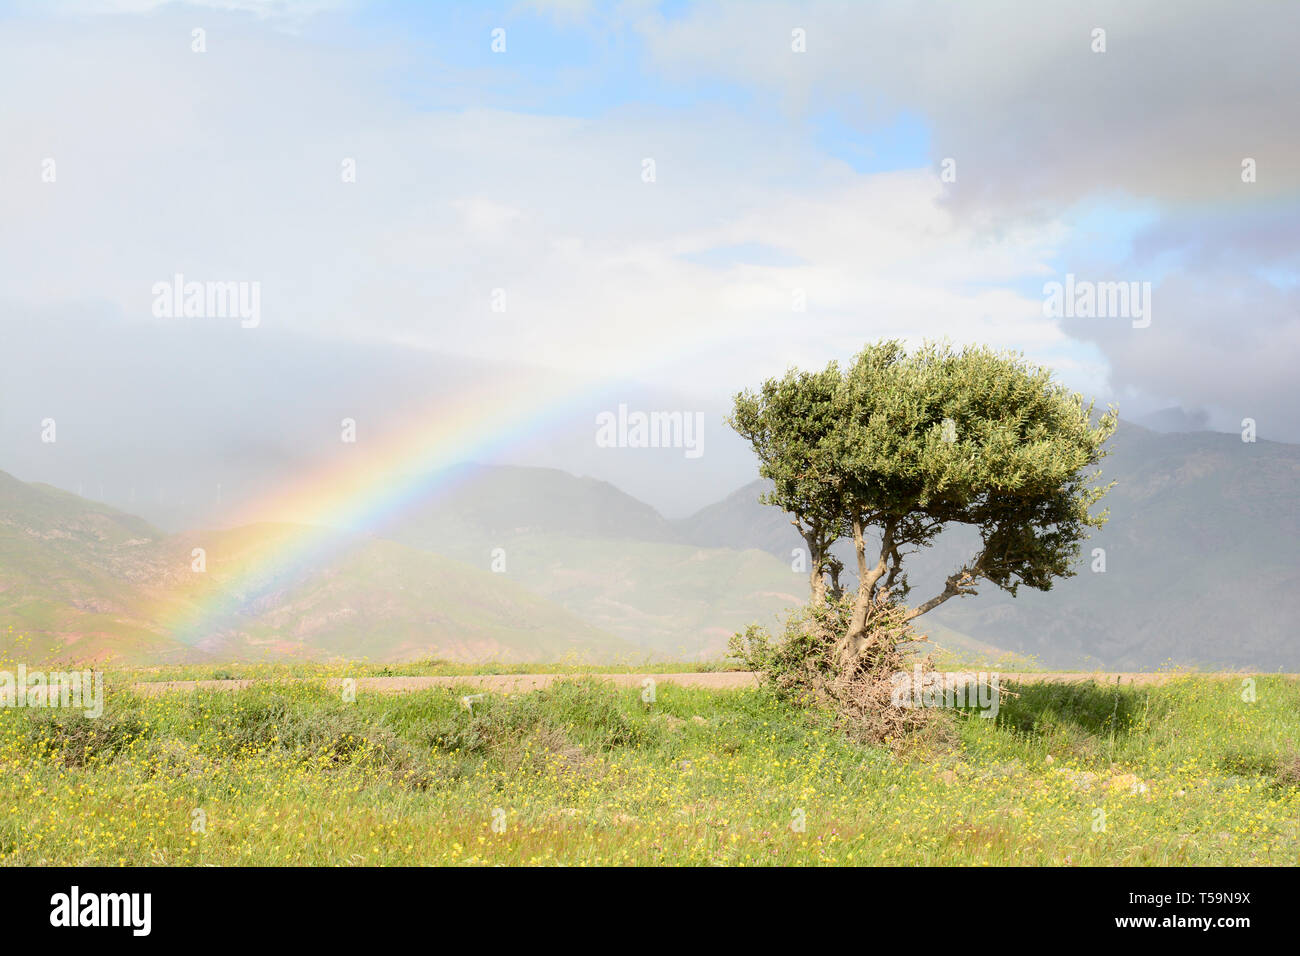 Alone olive tree and rainbow at back at spring time grass field, beautiful colors in the cloudy sky - Stock Image